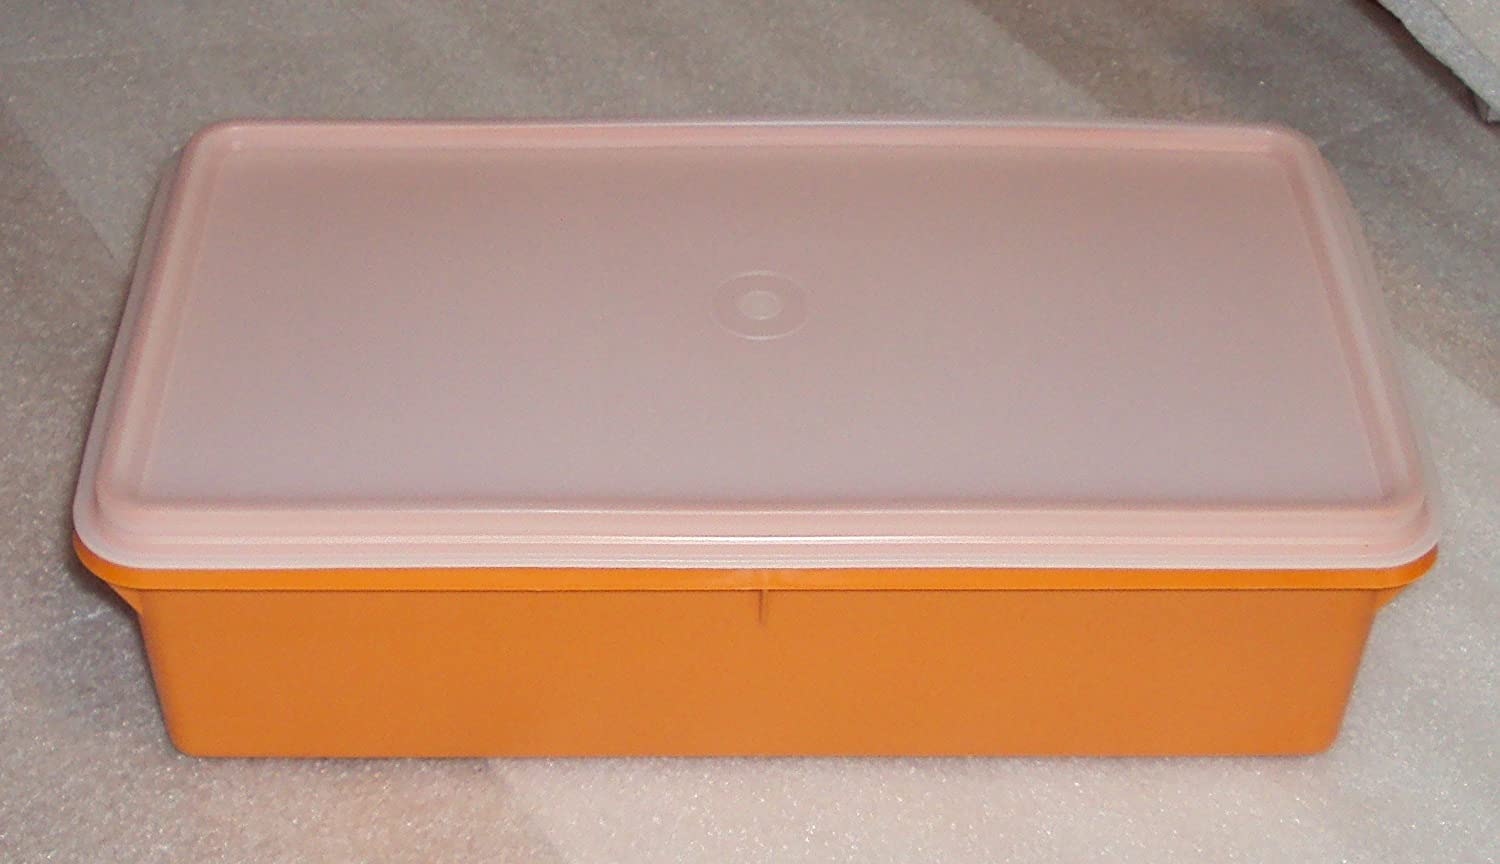 Tupperware Cracker Keeper Rectangular Container, 1980u0027s Harvest Colors:  Amazon.co.uk: Kitchen U0026 Home